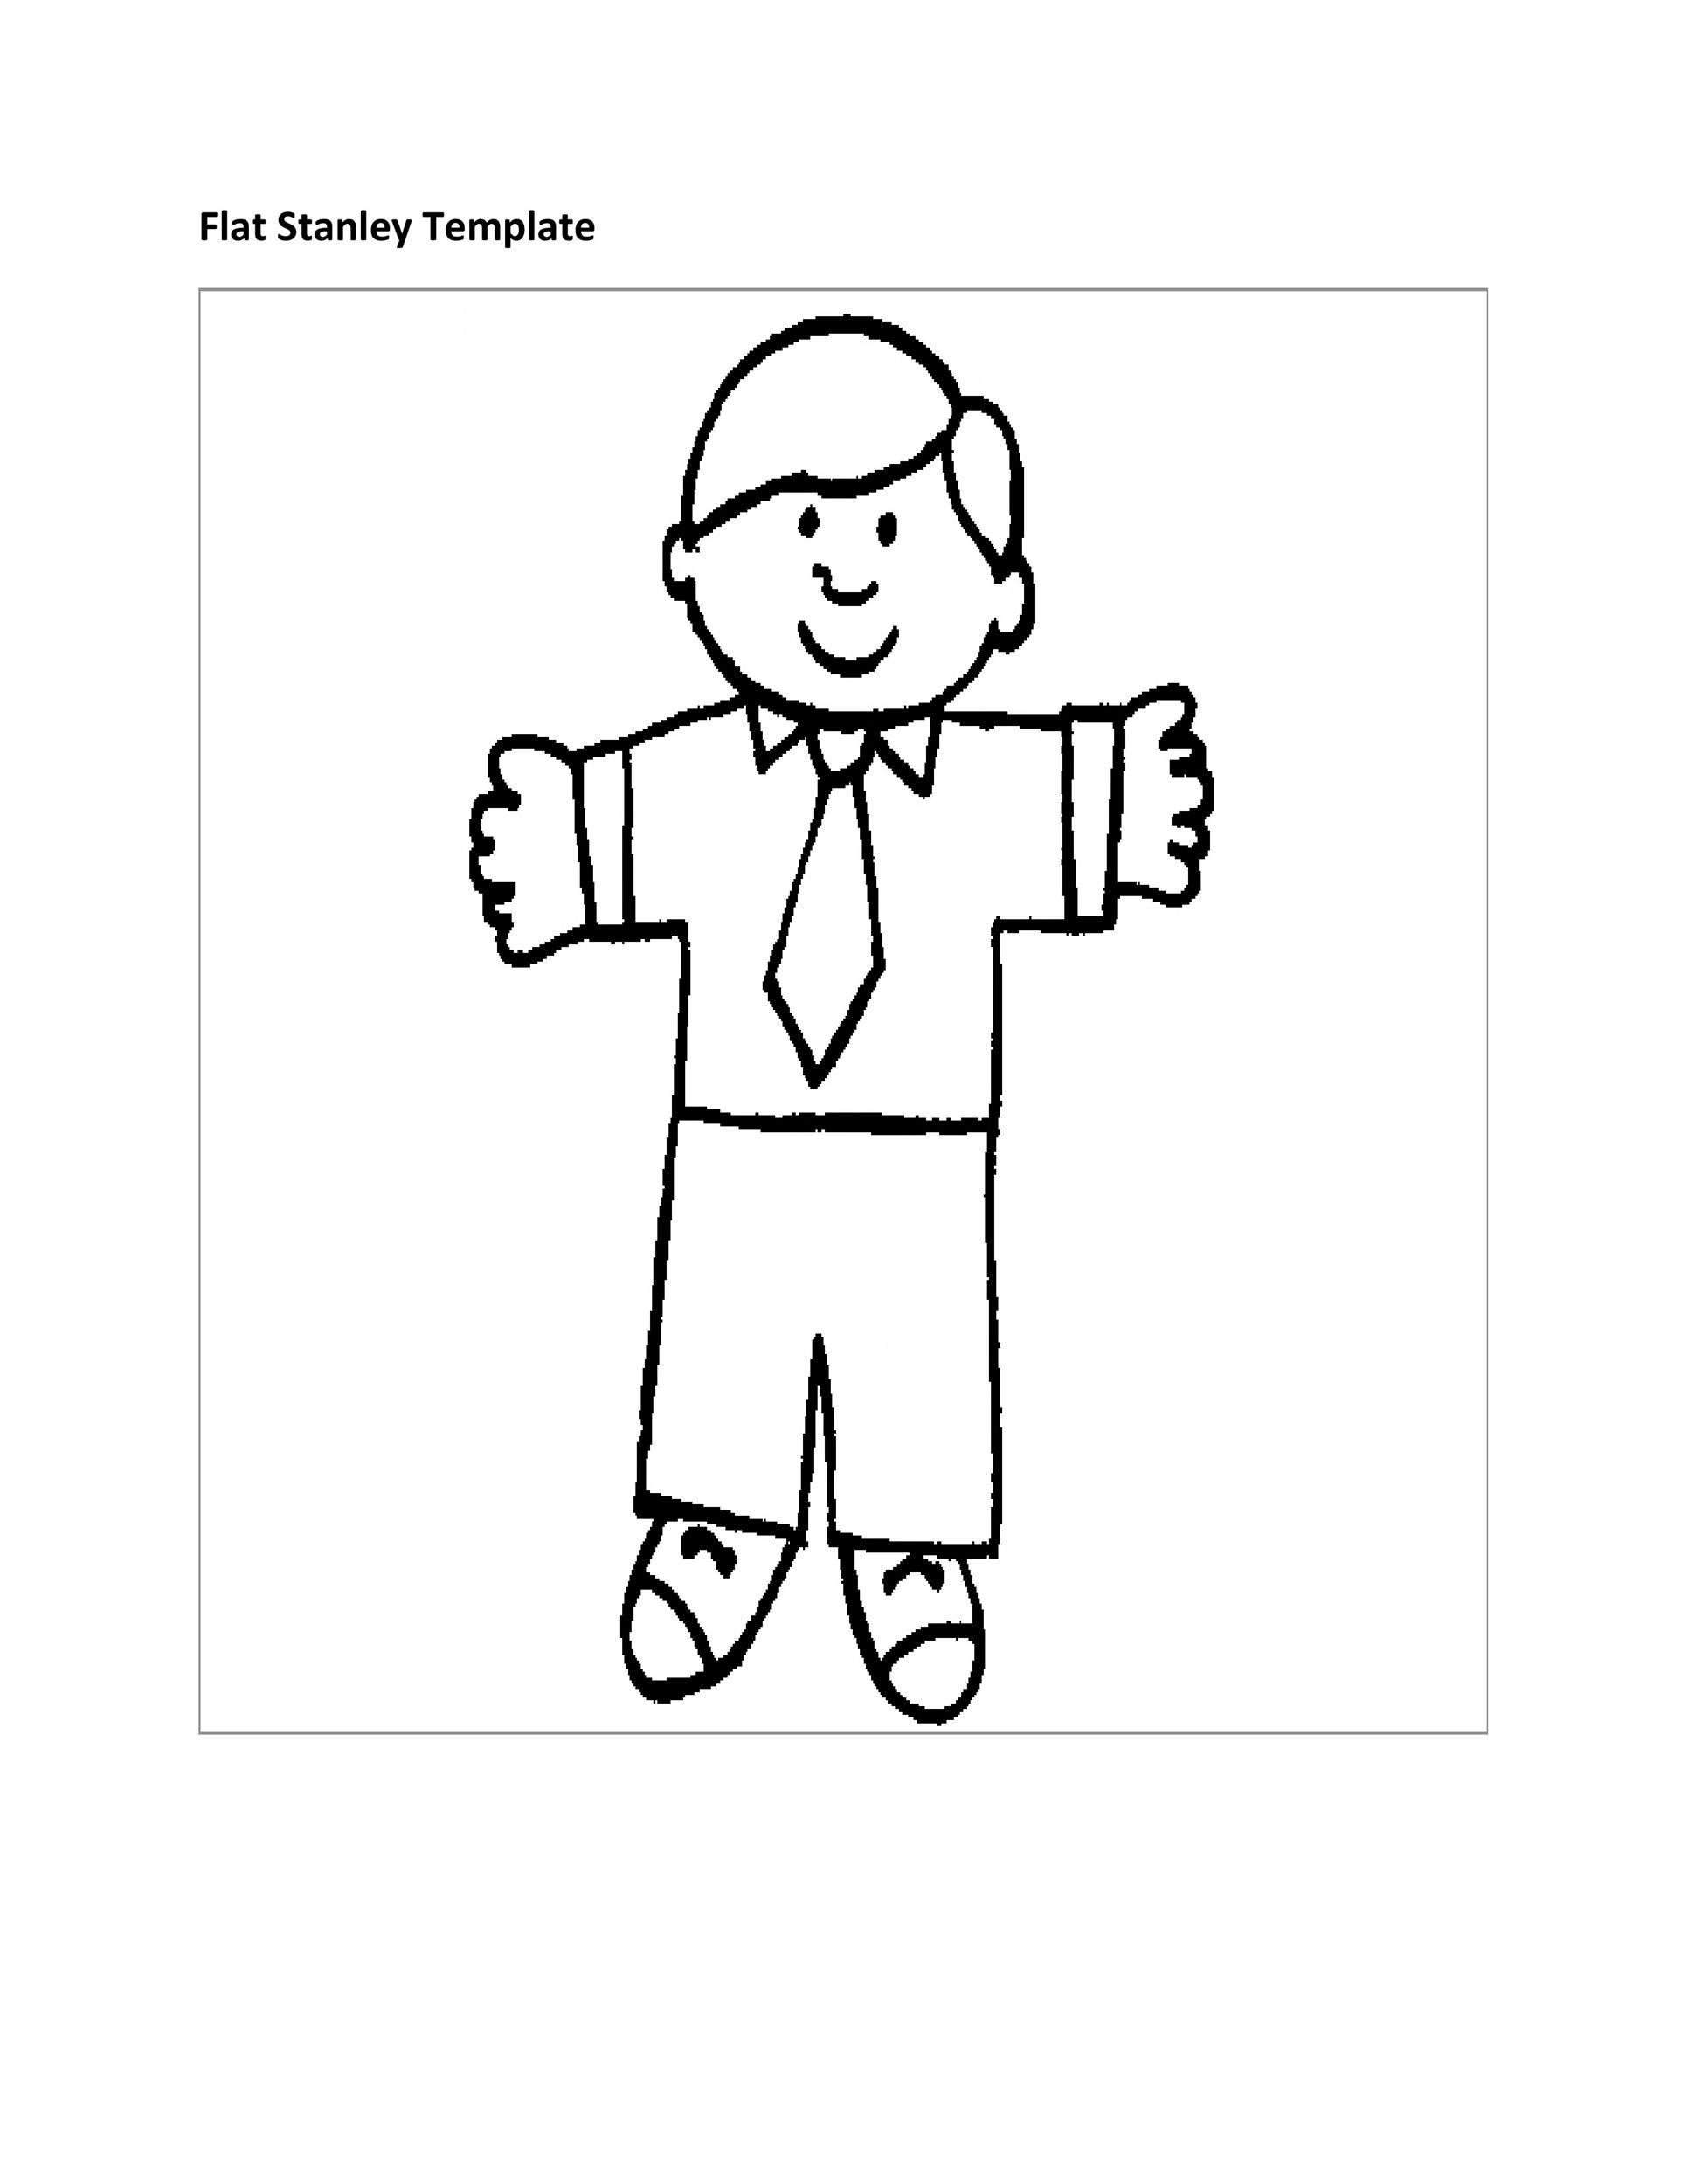 Free Flat Stanley Template 33